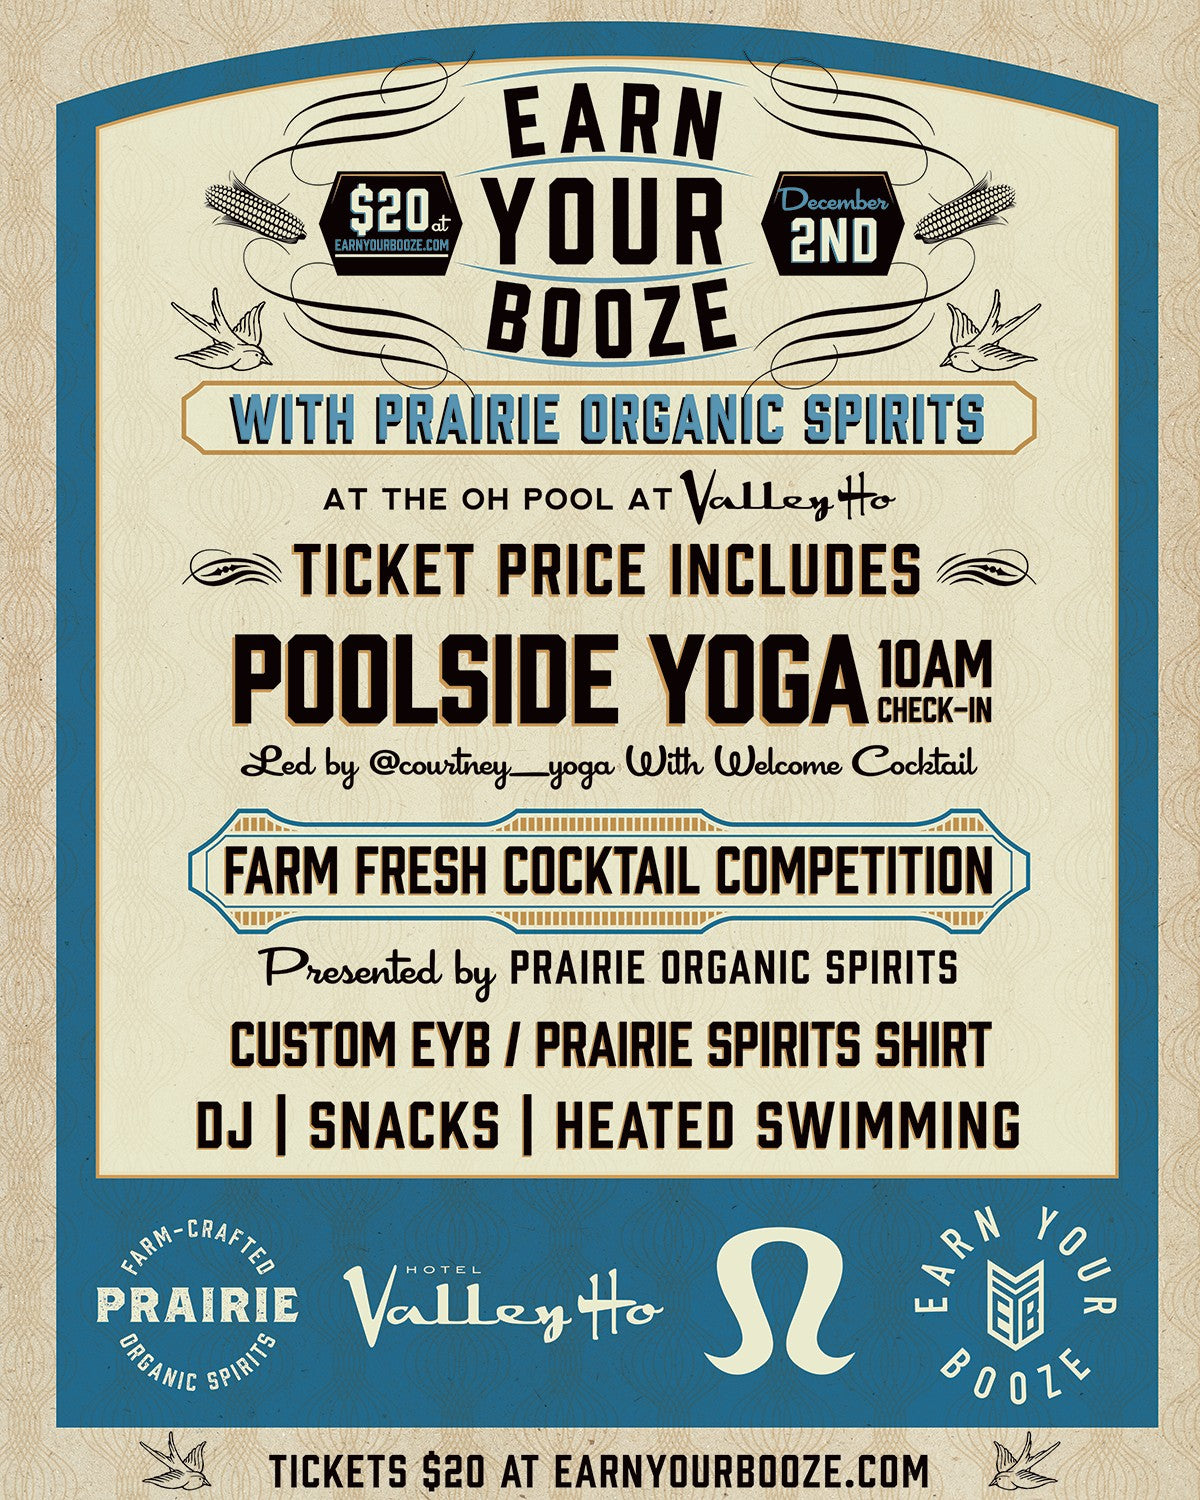 EARN YOUR VODKA | Valley Ho | Prairie Organic Spirits | December 2ndEarn Your Booze